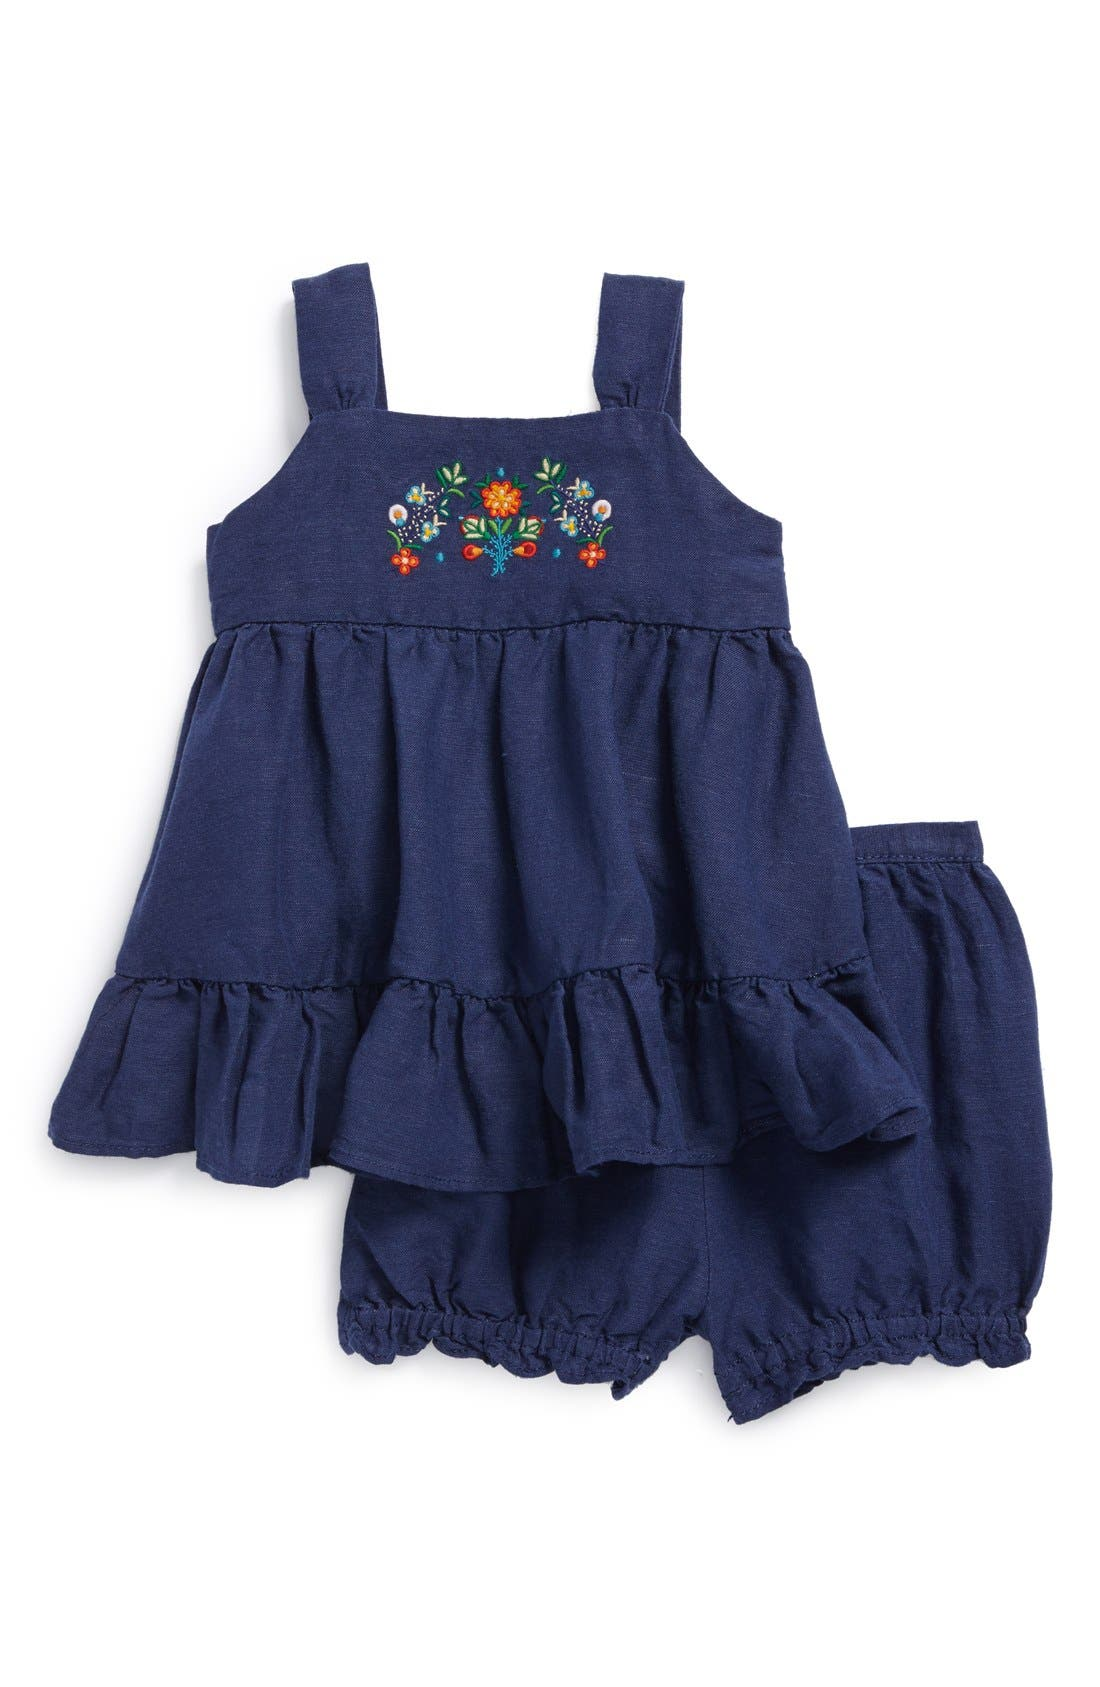 Main Image - Ralph Lauren Embroidered Dress & Diaper Cover (Baby Girls)